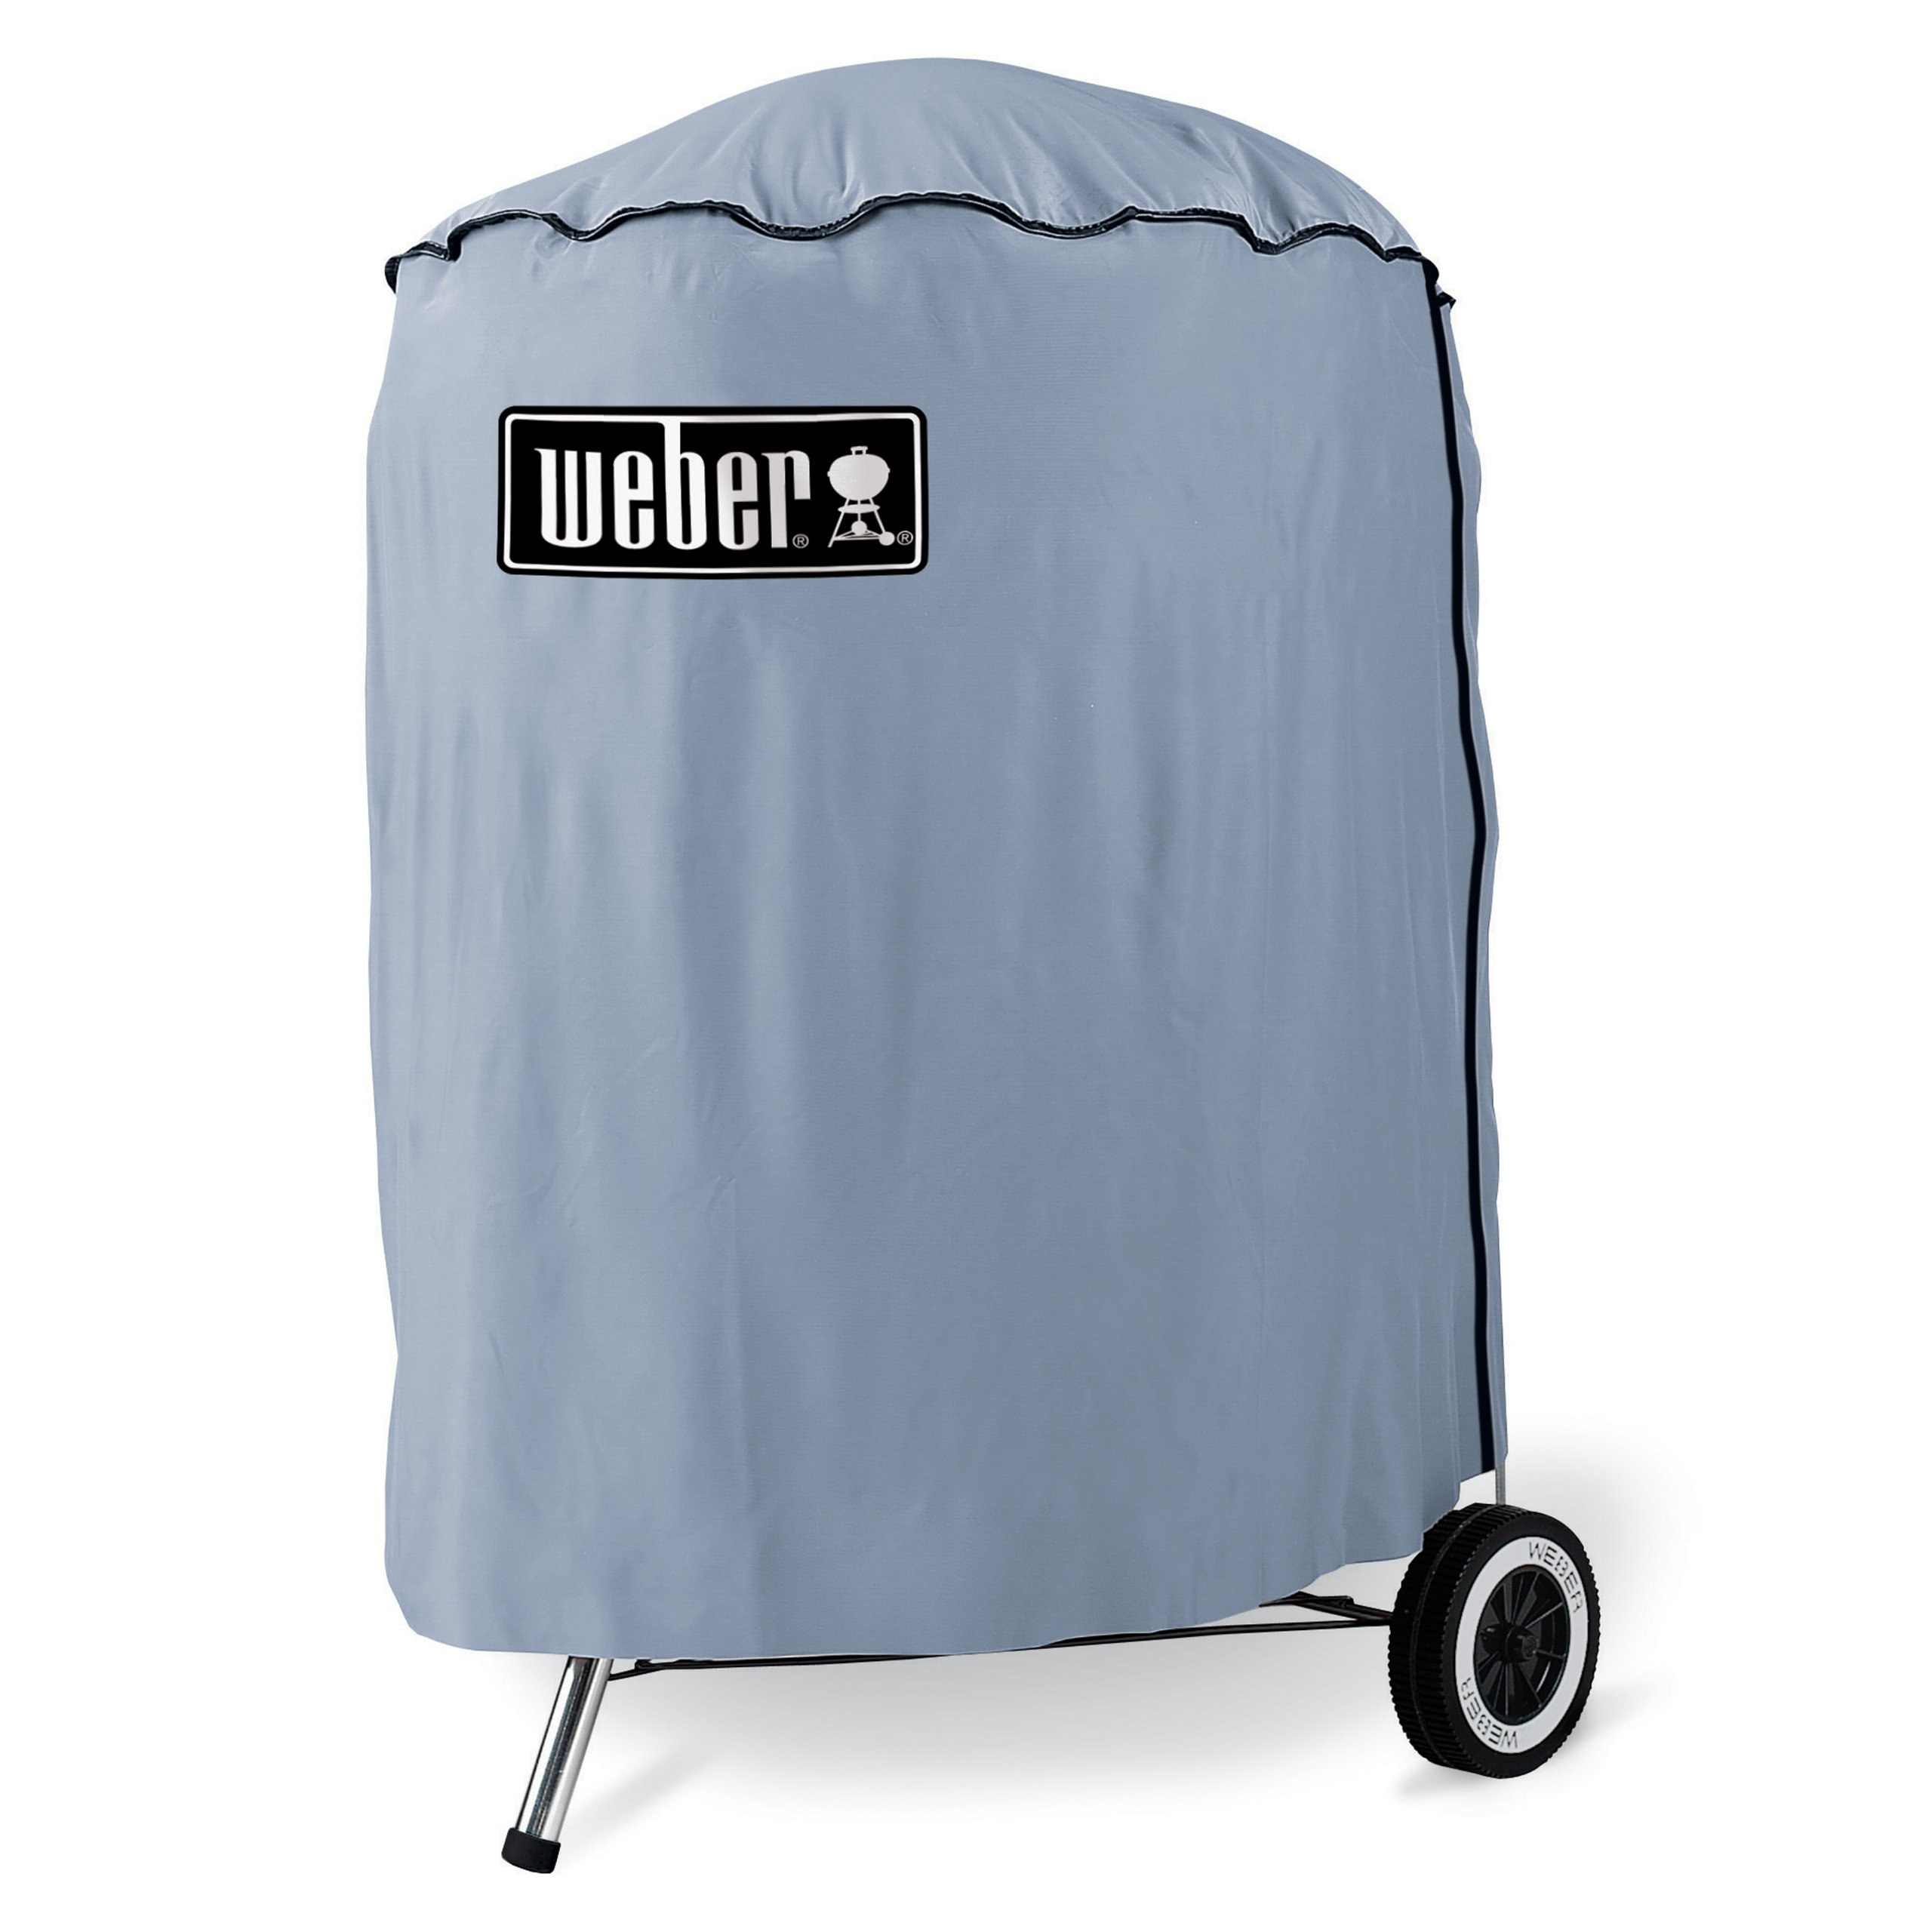 Weber 7451 Standard Kettle Cover, Fits 22-1/2-Inch Charcoal Grills by Weber